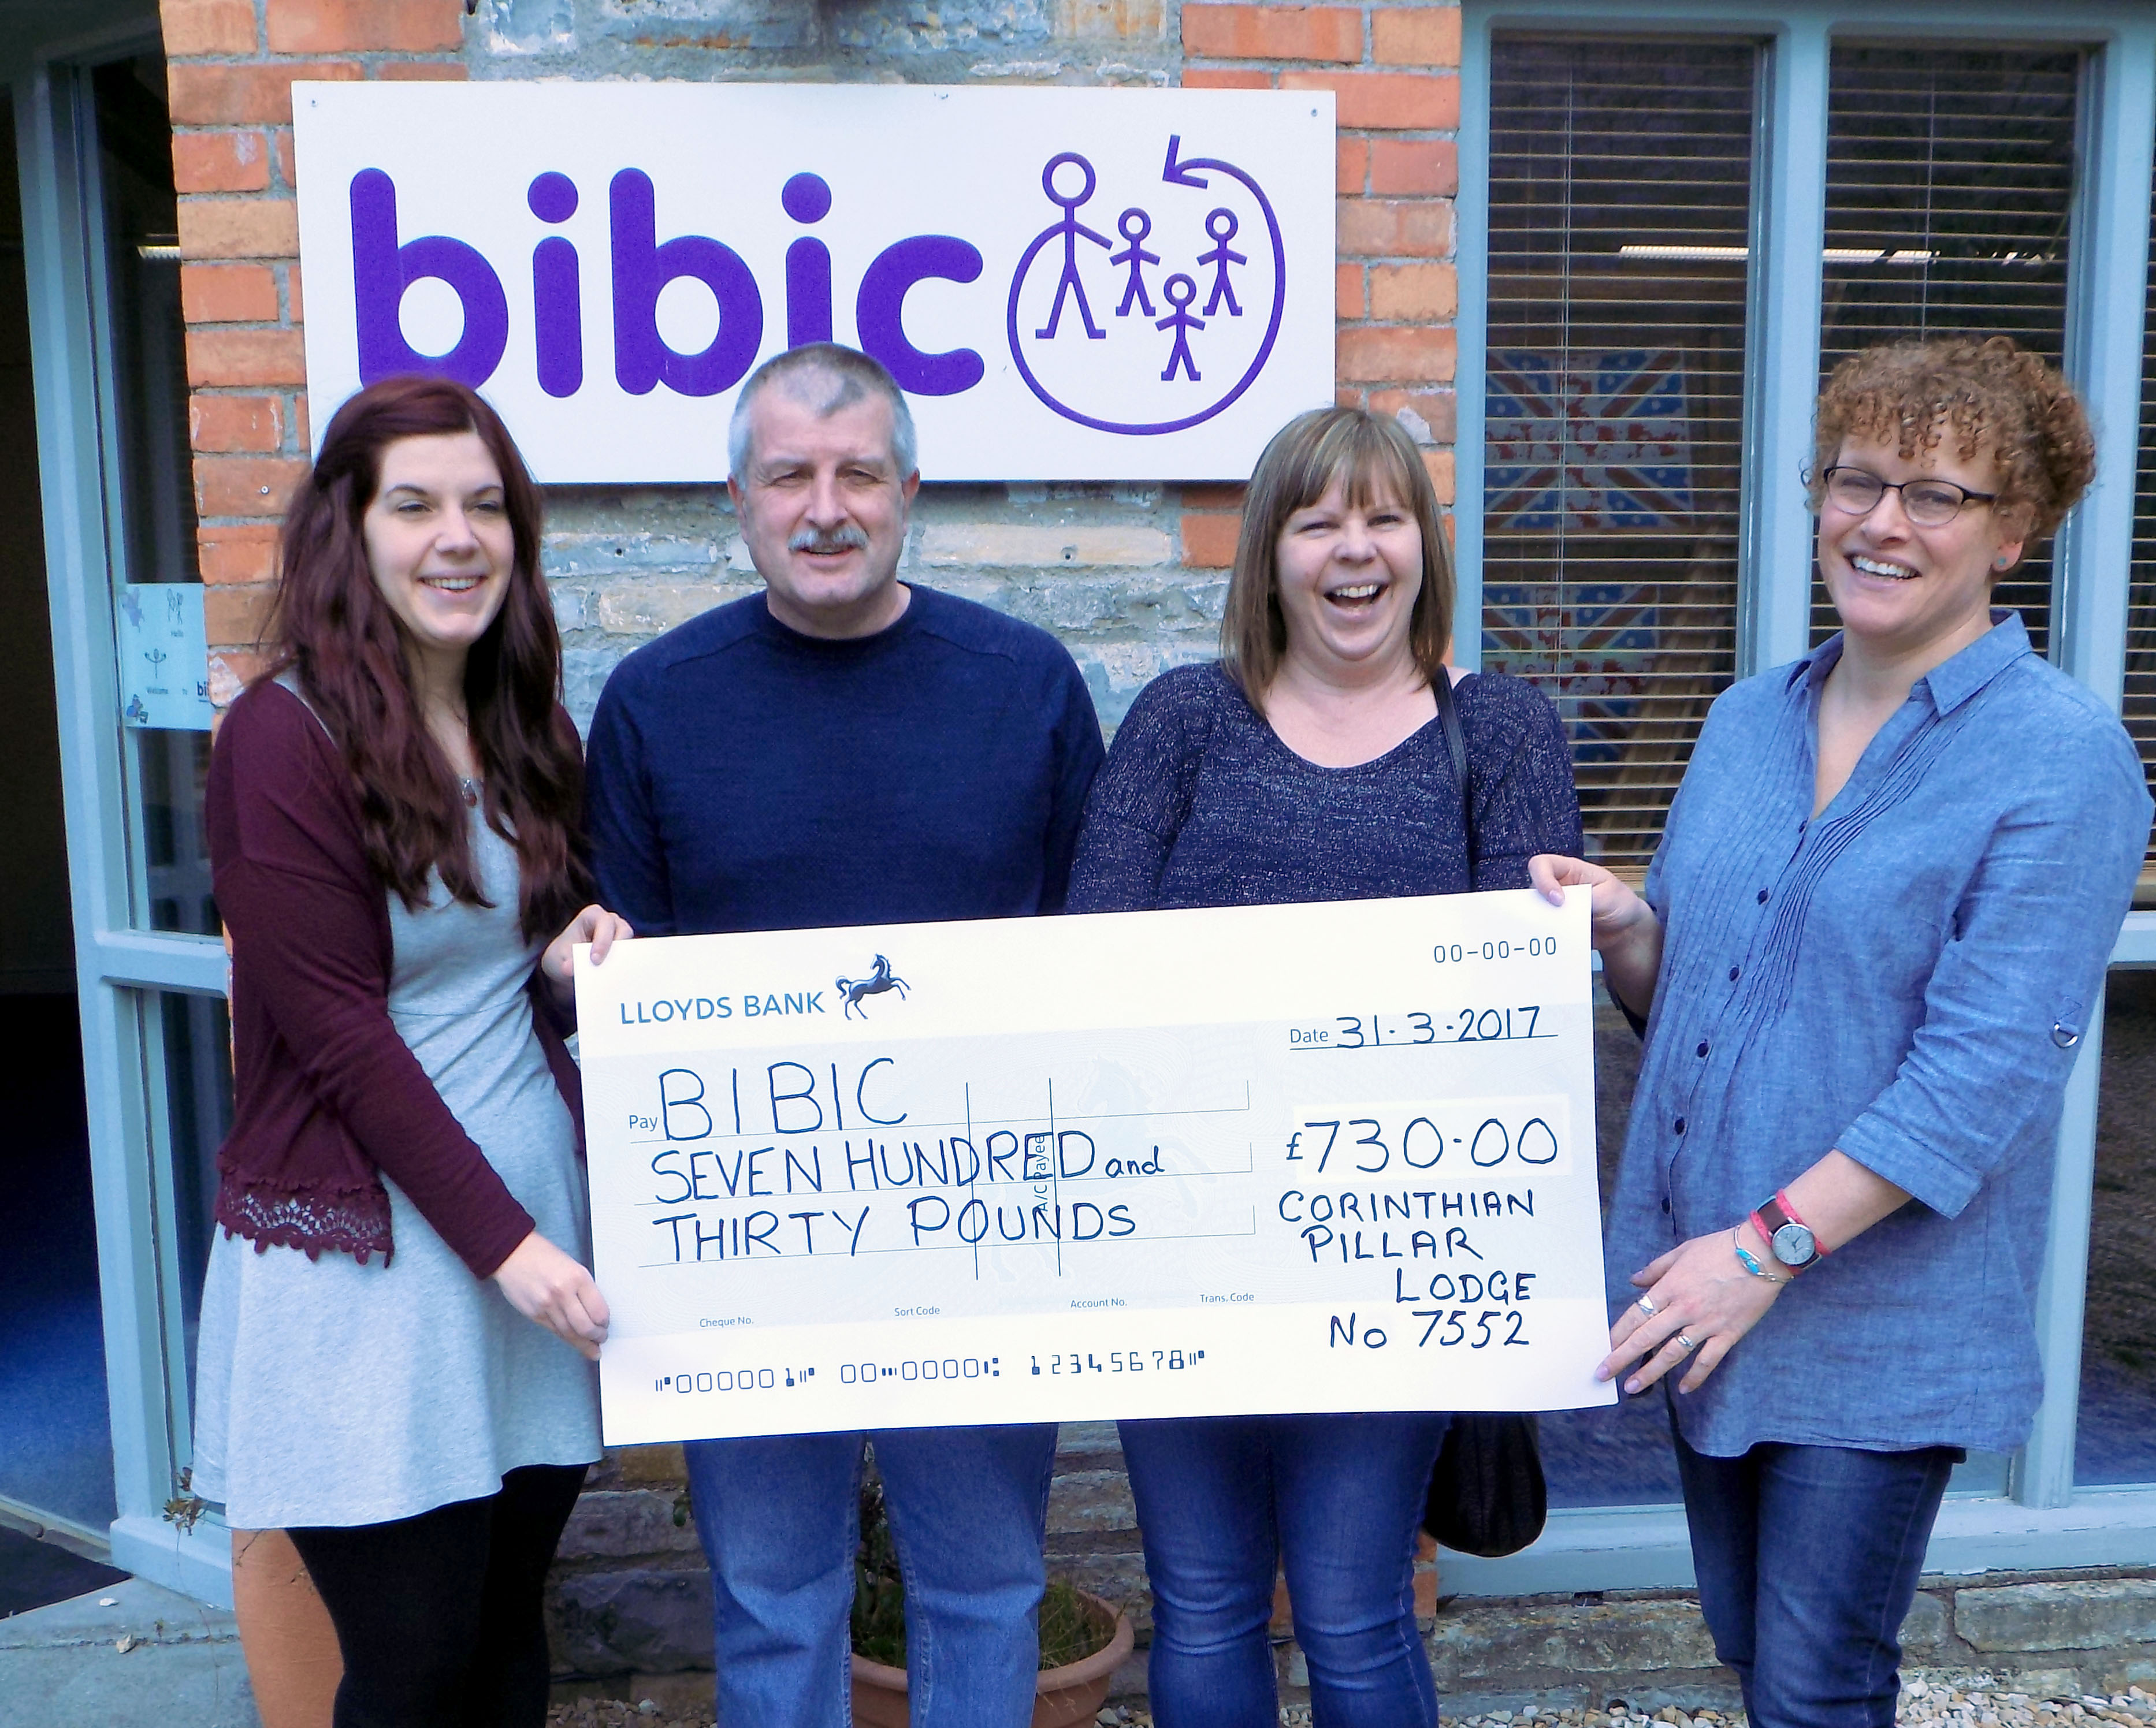 Yeovil based Masons give further support to bibic  - bibic org uk